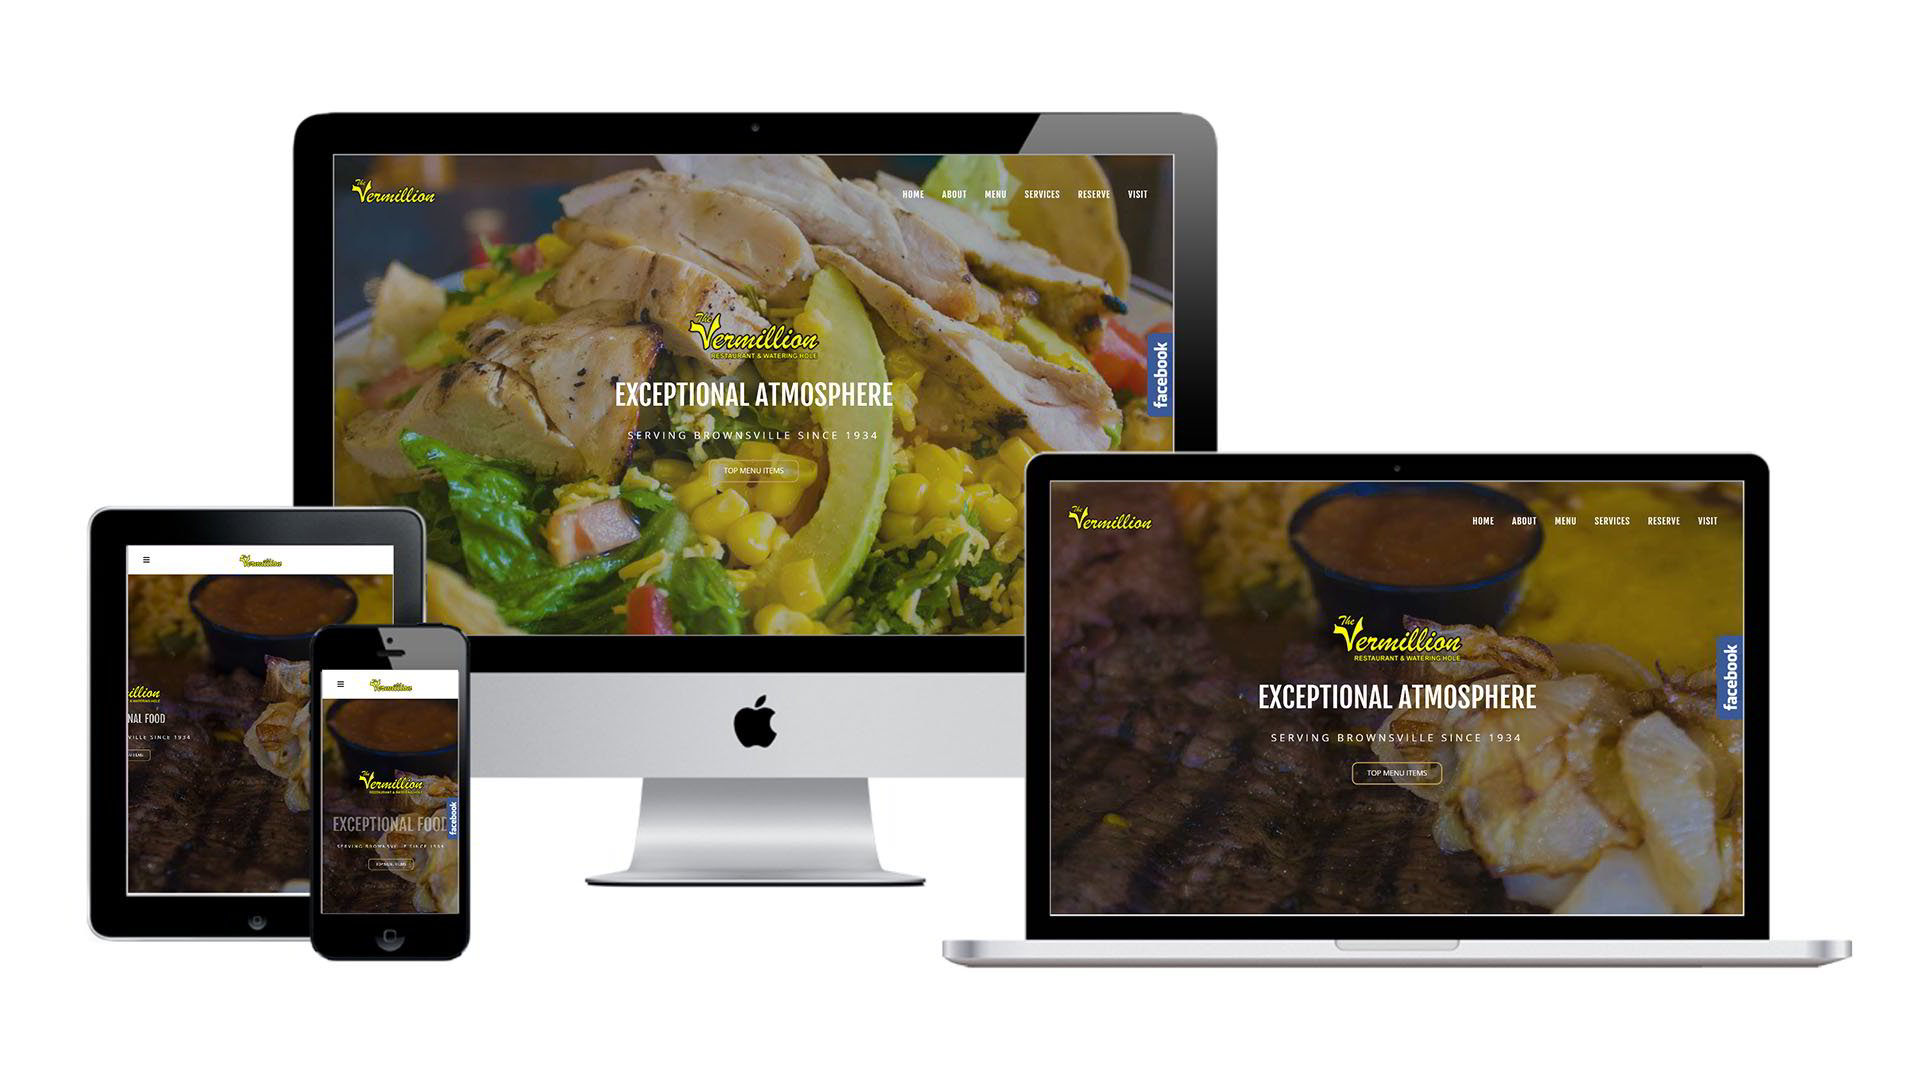 The Vermillion Restaurant Website